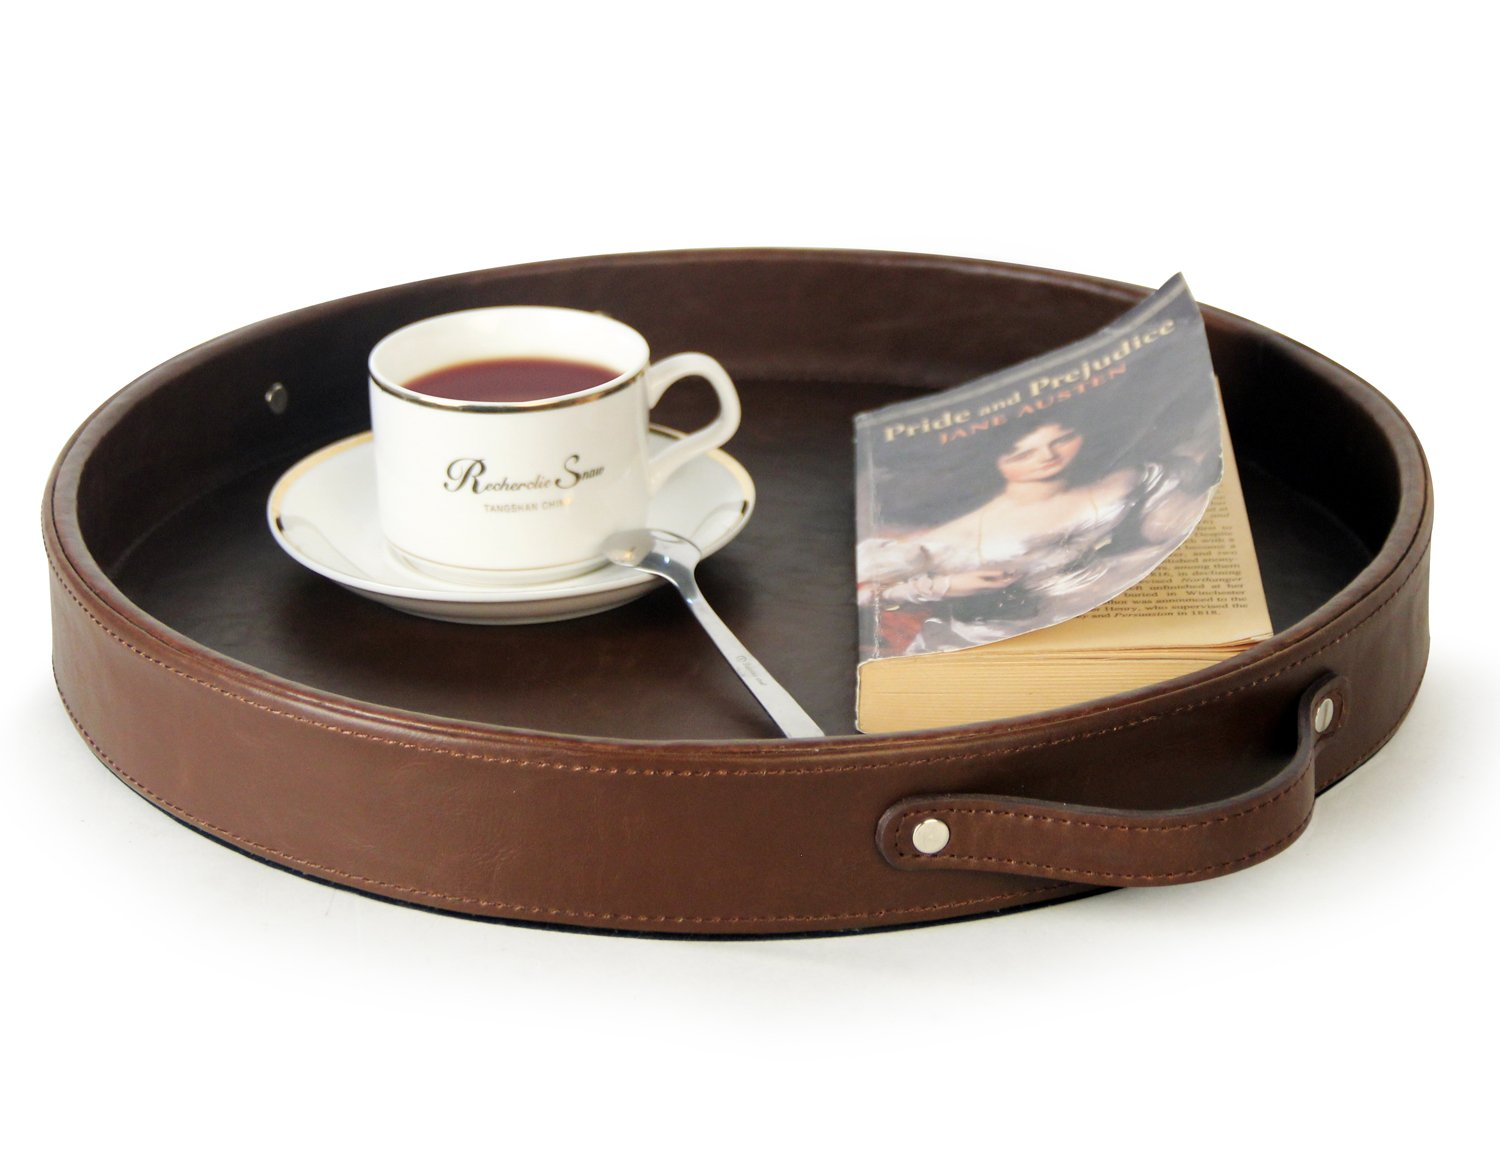 Ms.Box PU Leather Round Serving Tray with Handles, Brown Jincheng JCA2166725